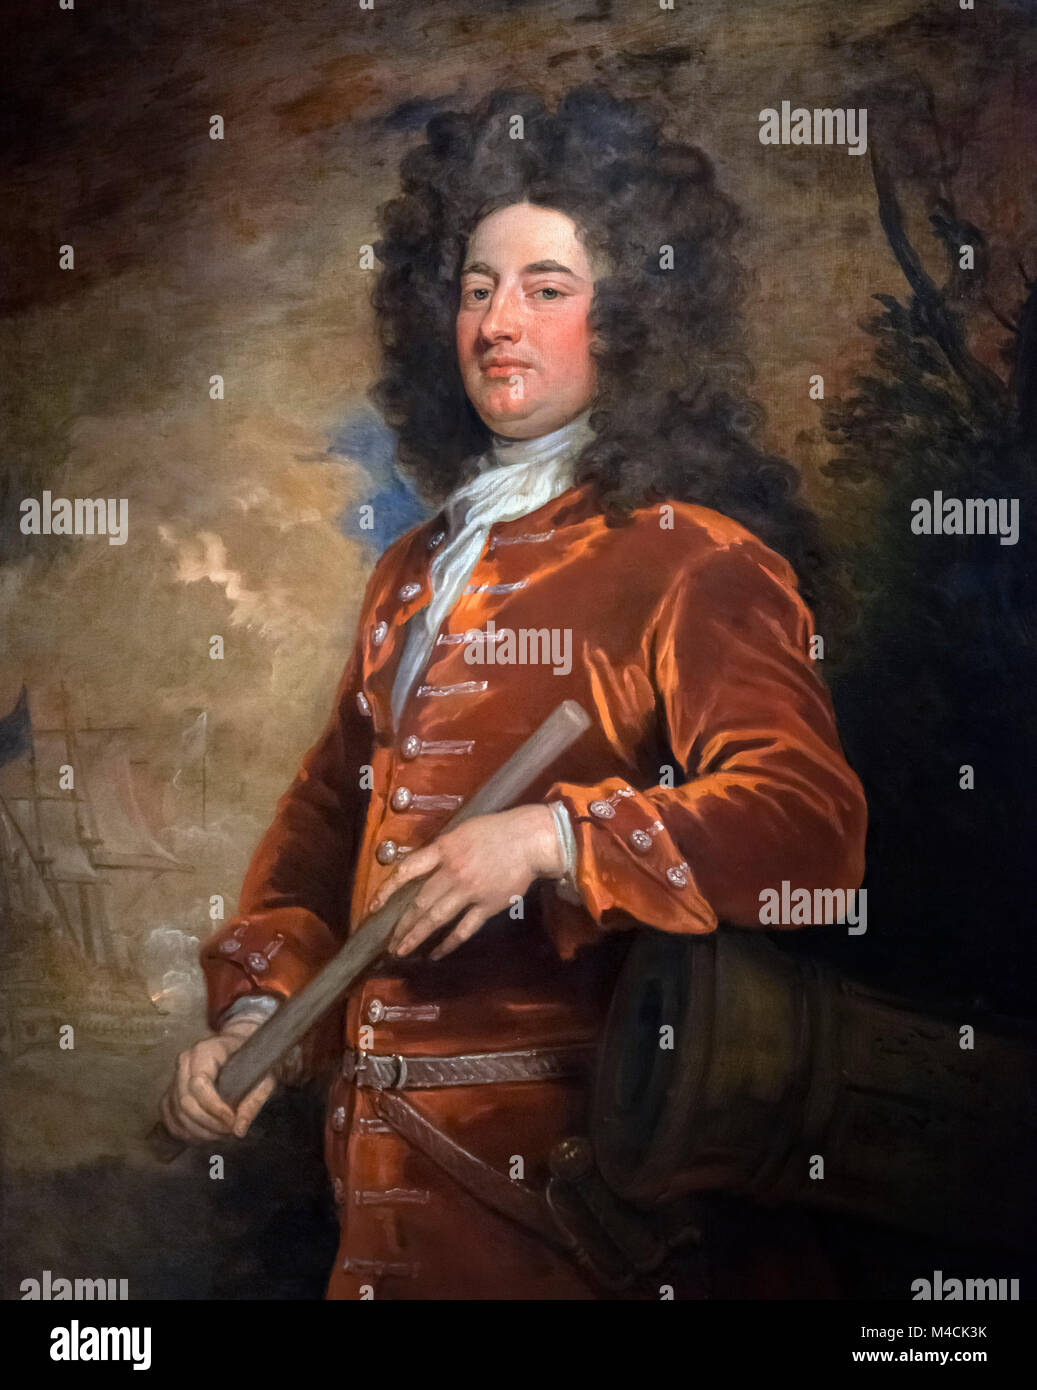 Admiral Sir John Jennings (1664-1743) by Sir Godfrey Kneller, oil on canvas, c.1708/9 - Stock Image